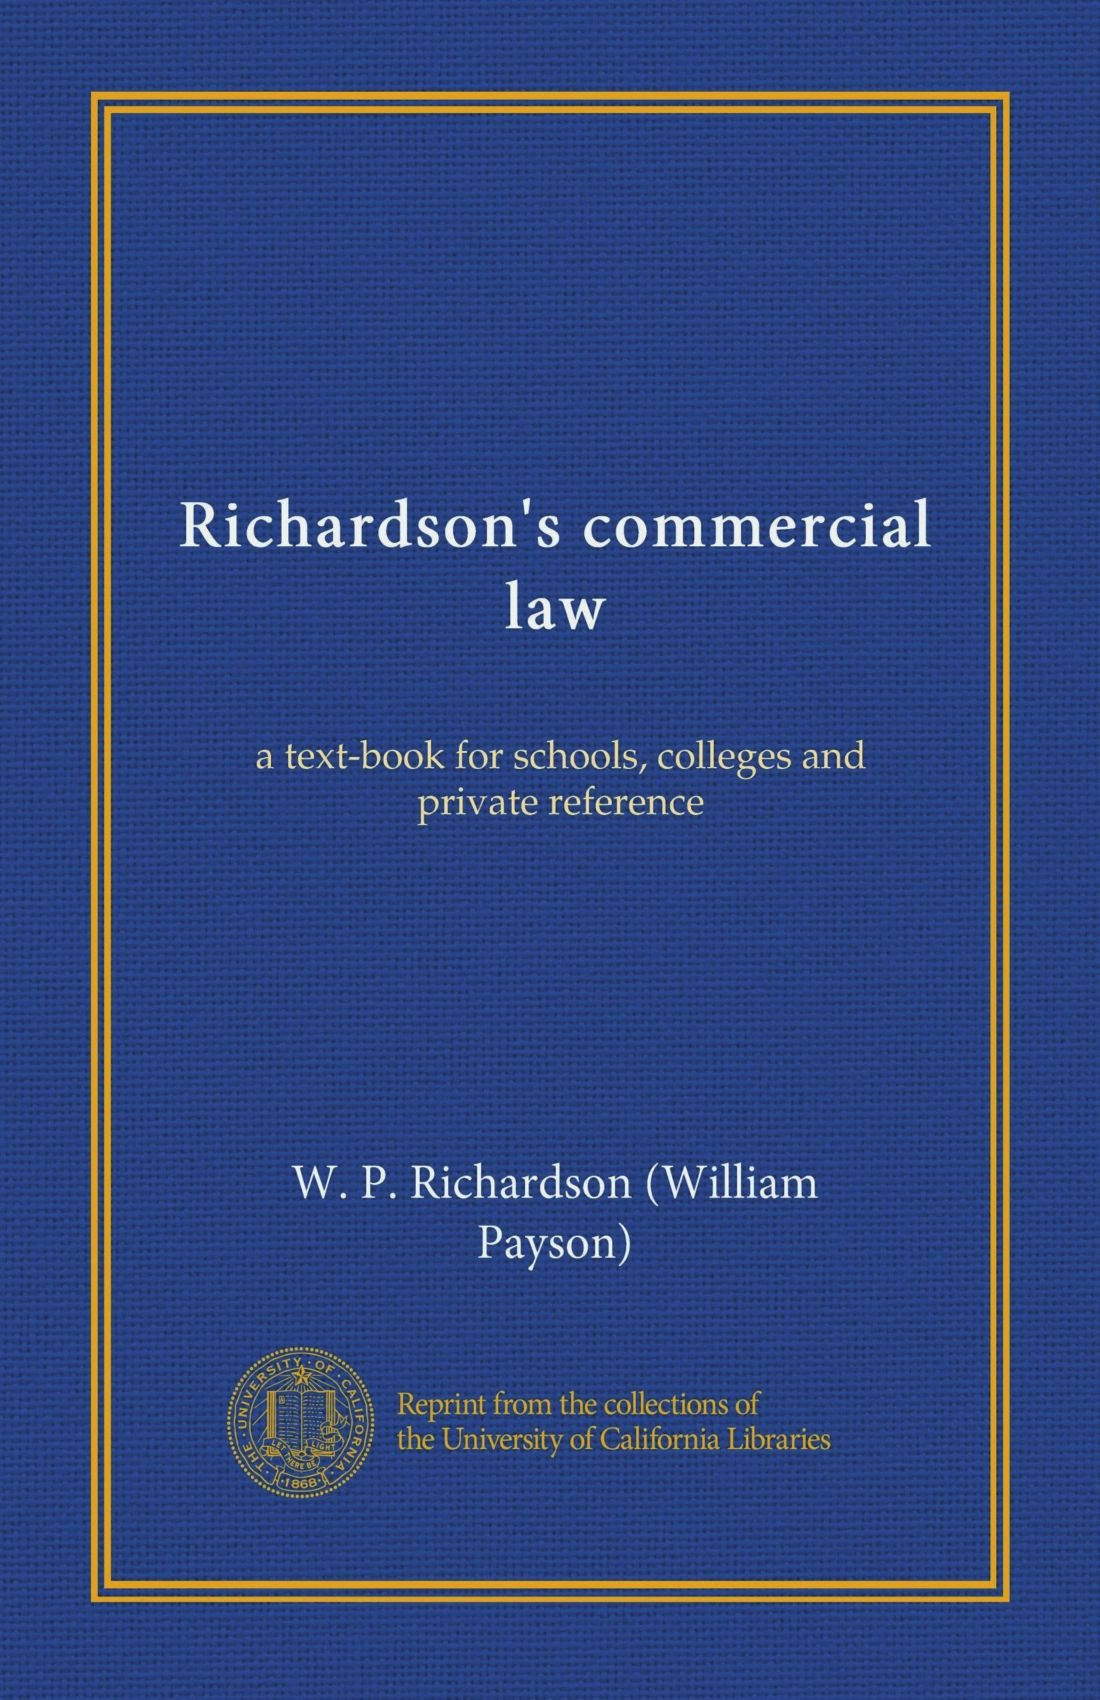 Download Richardson's commercial law: a text-book for schools, colleges and private reference ebook